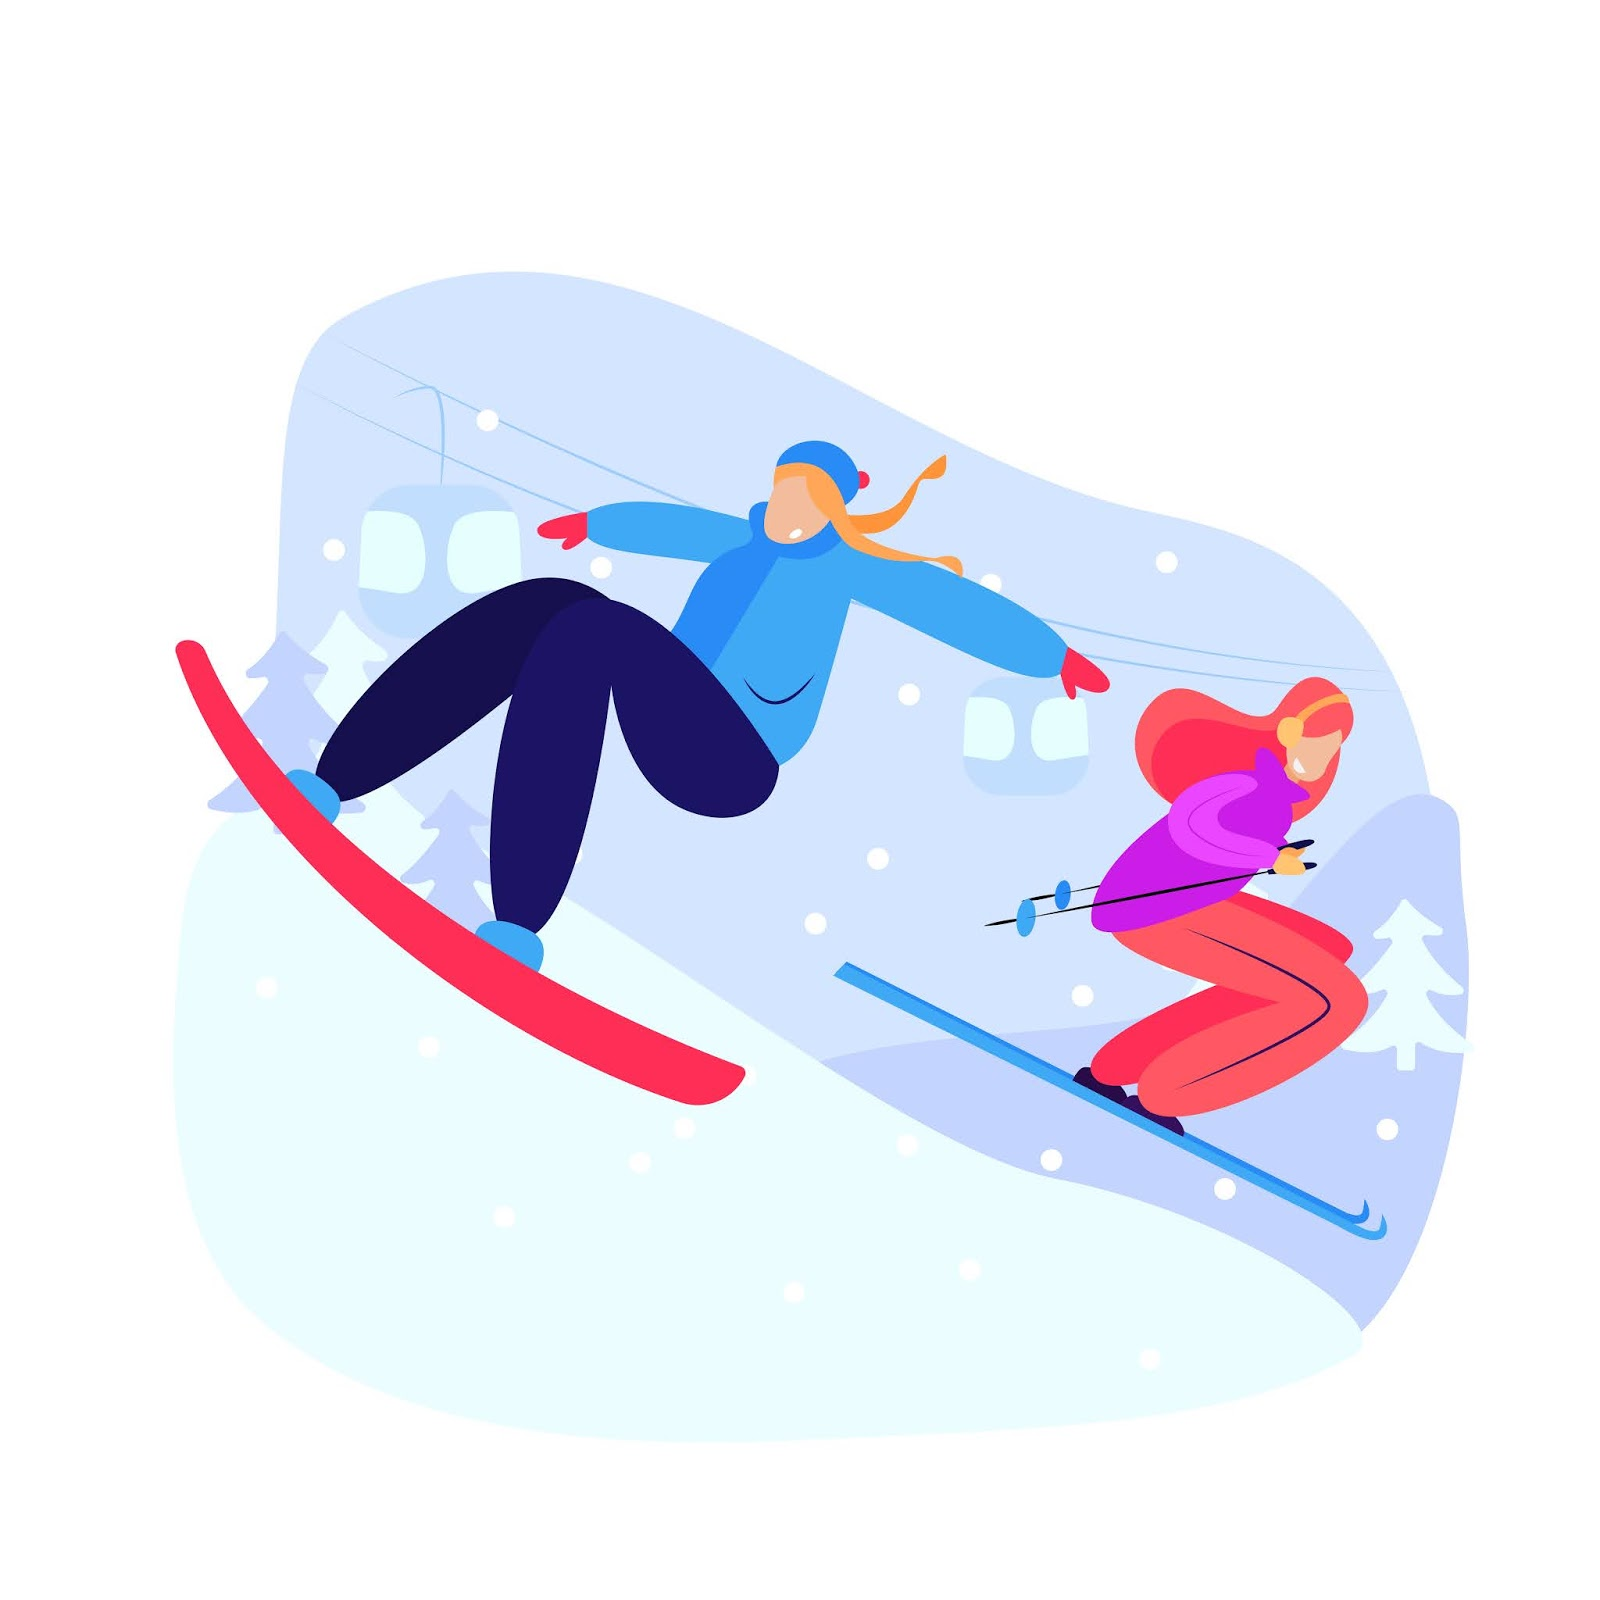 Women Snowboarding And Skiing Downhill Free Download Vector CDR, AI, EPS and PNG Formats